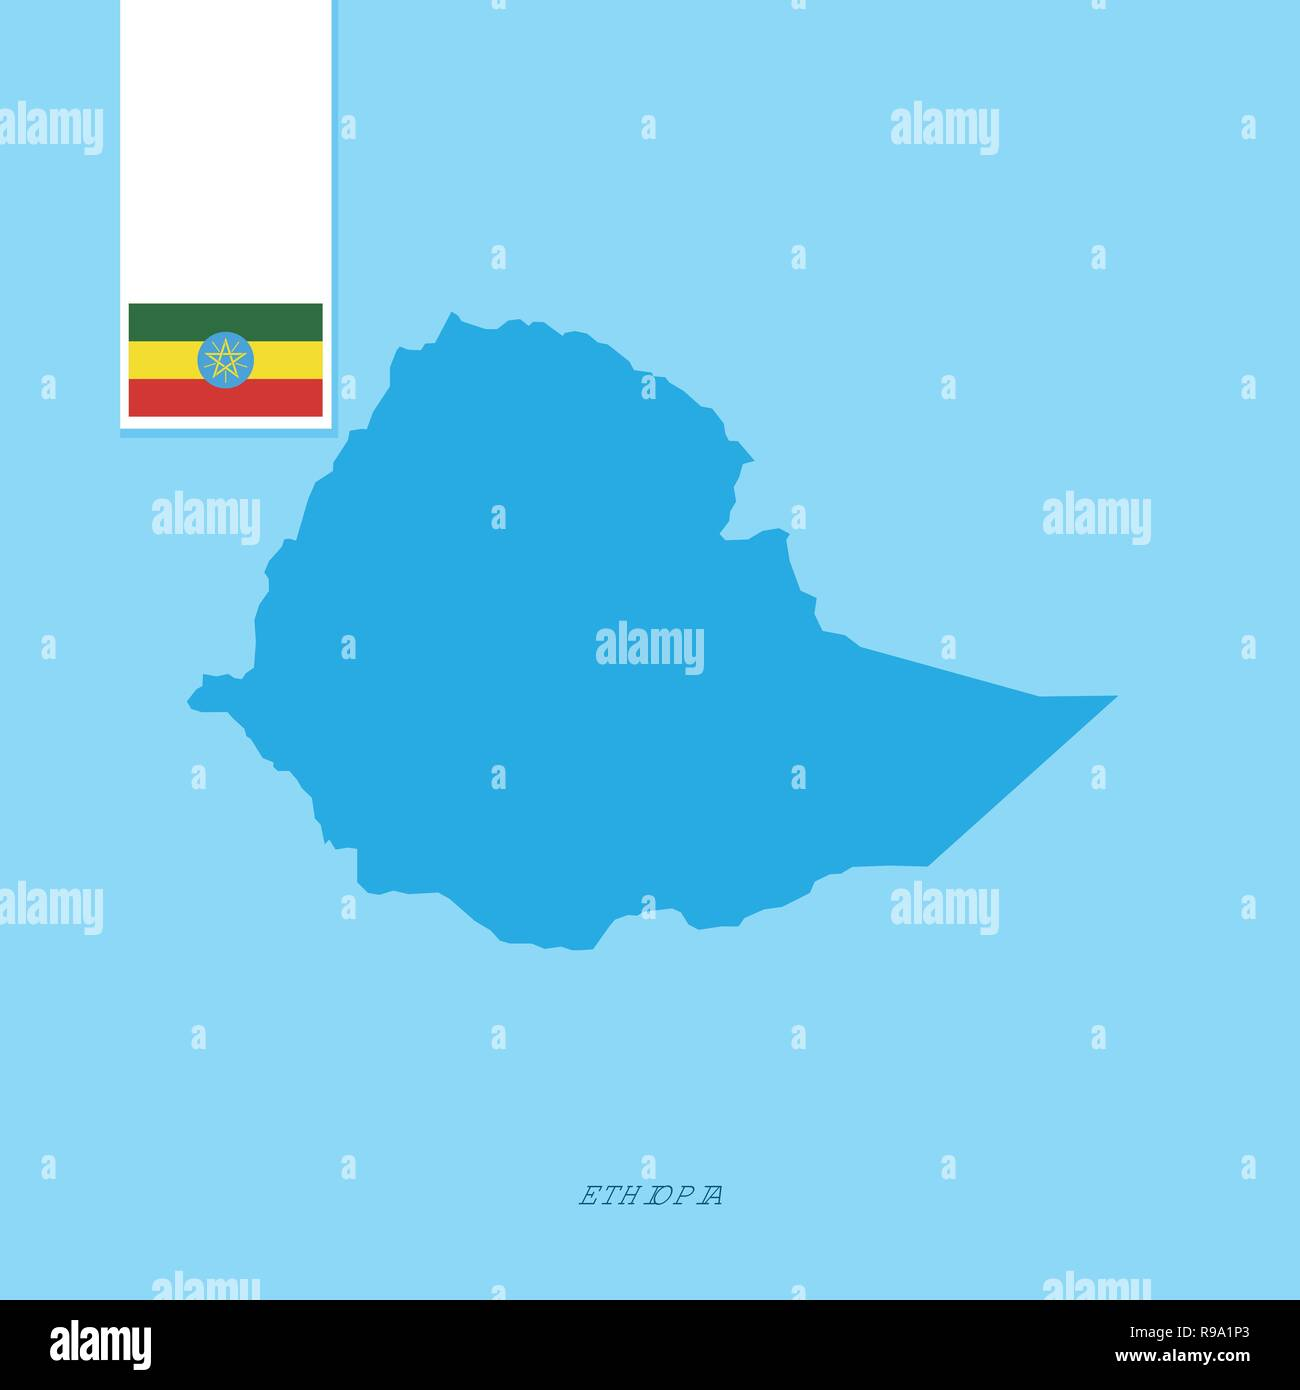 Ethiopia Country Map with Flag over Blue background - Stock Vector